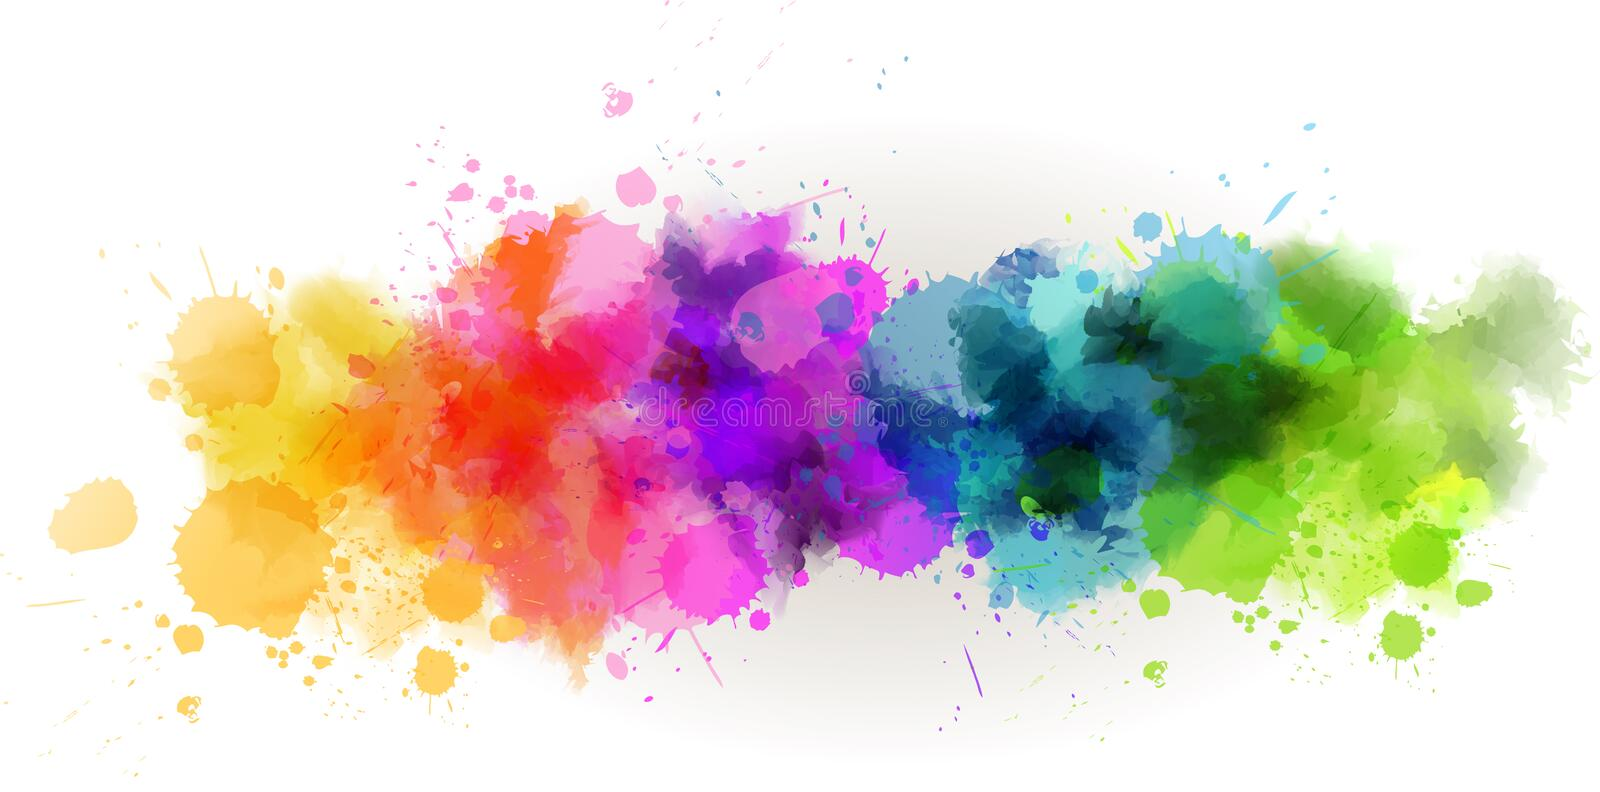 Watercolor line background royalty free illustration